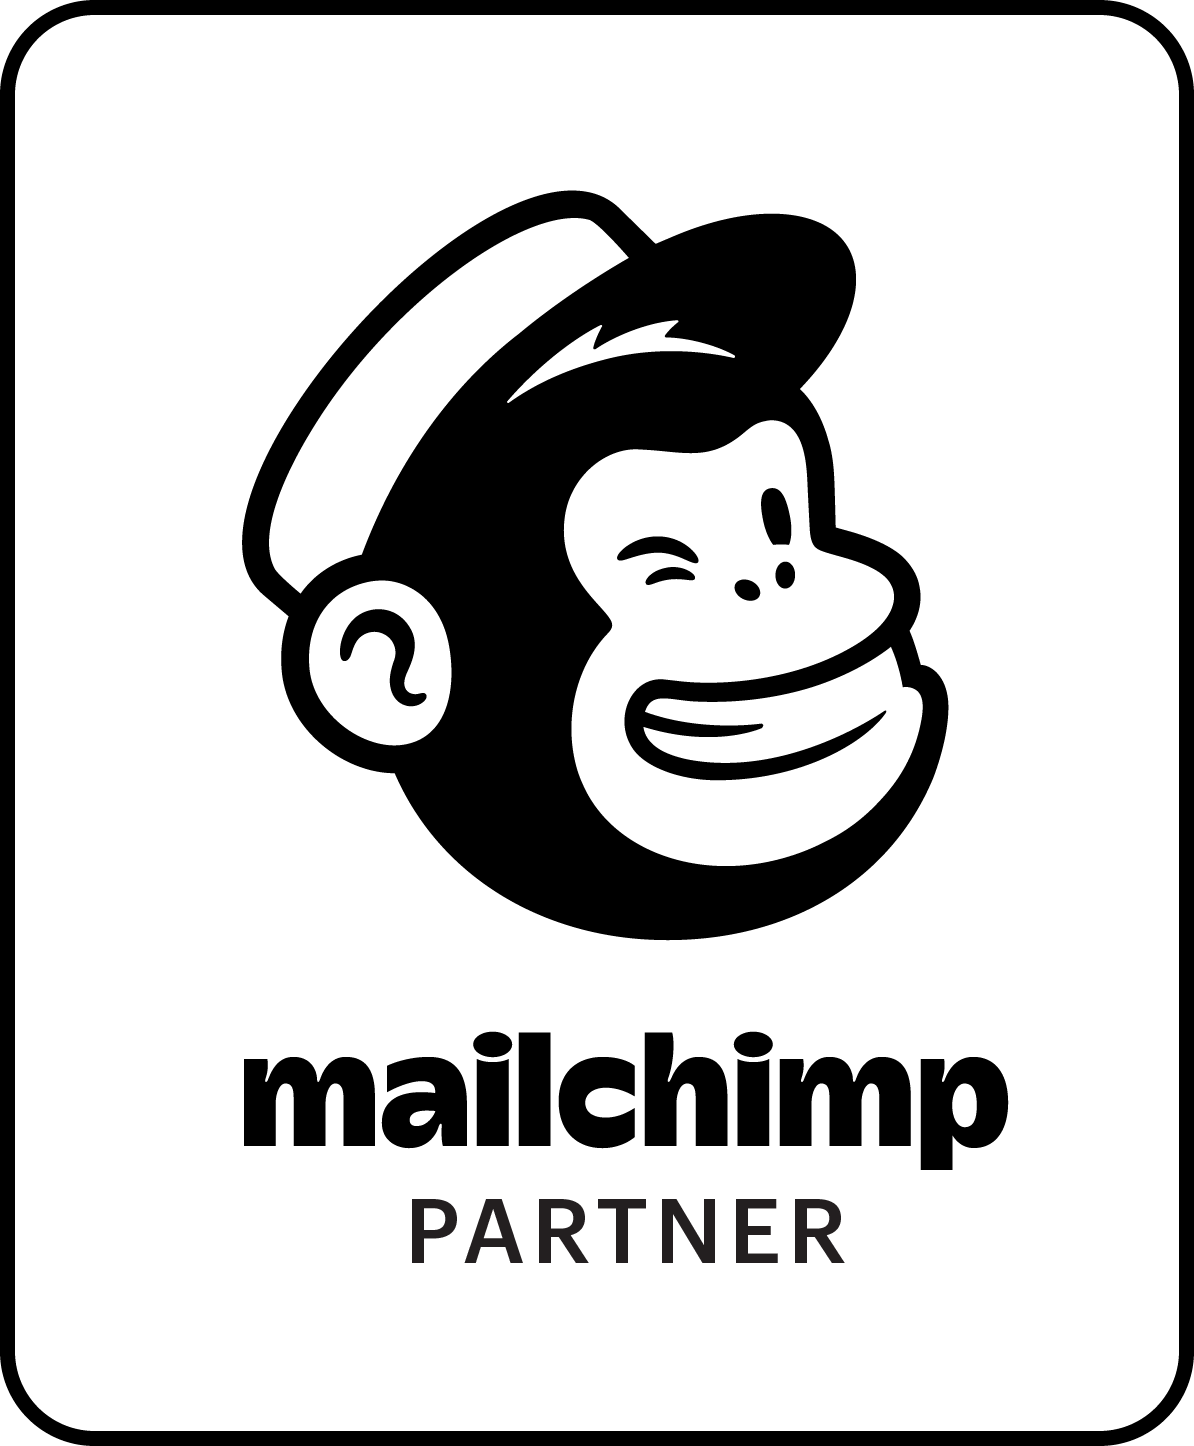 Mailchimp Partner Email Marketing Services